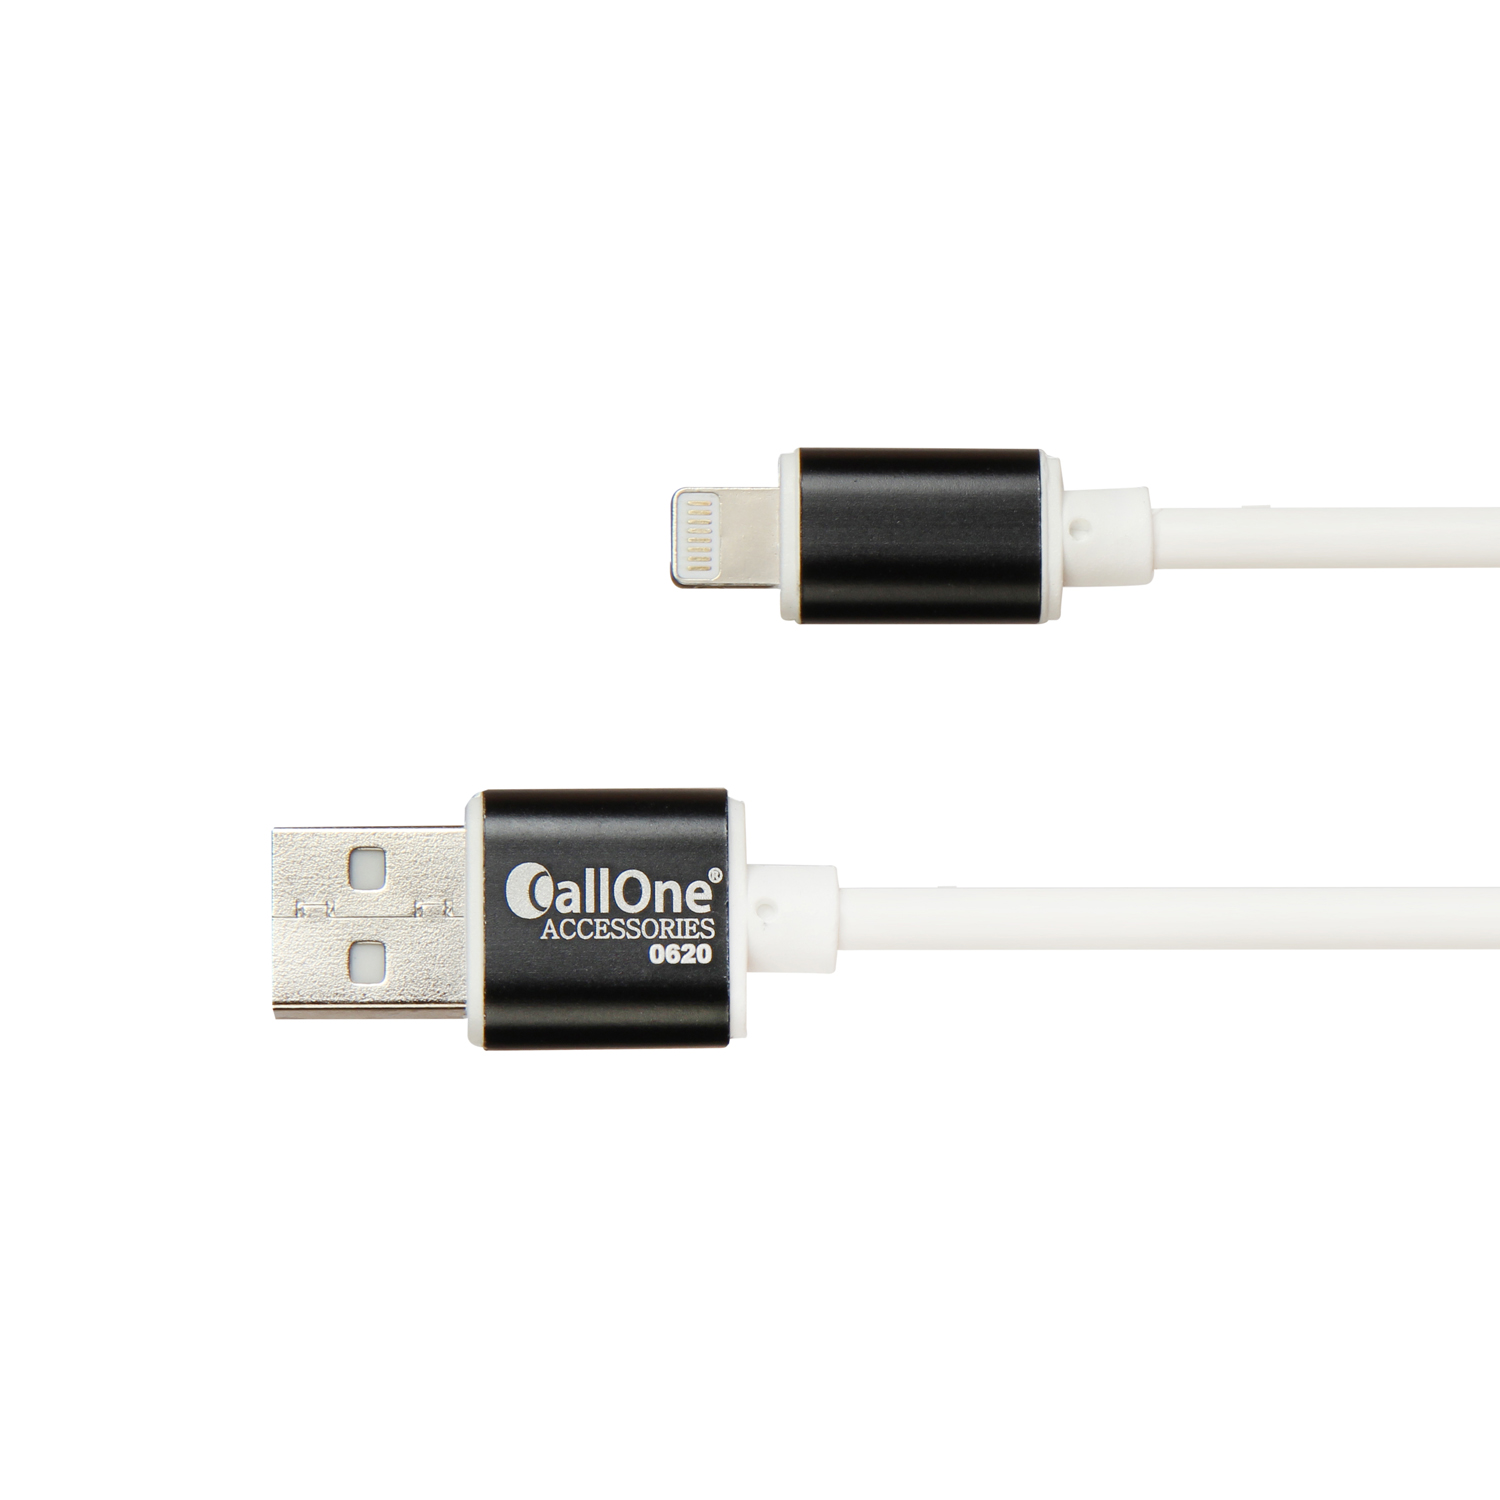 Callone Z-series Metal Cap Fast Data & Charging iPhone 5/6/7 USB Round Cable 4Amp.